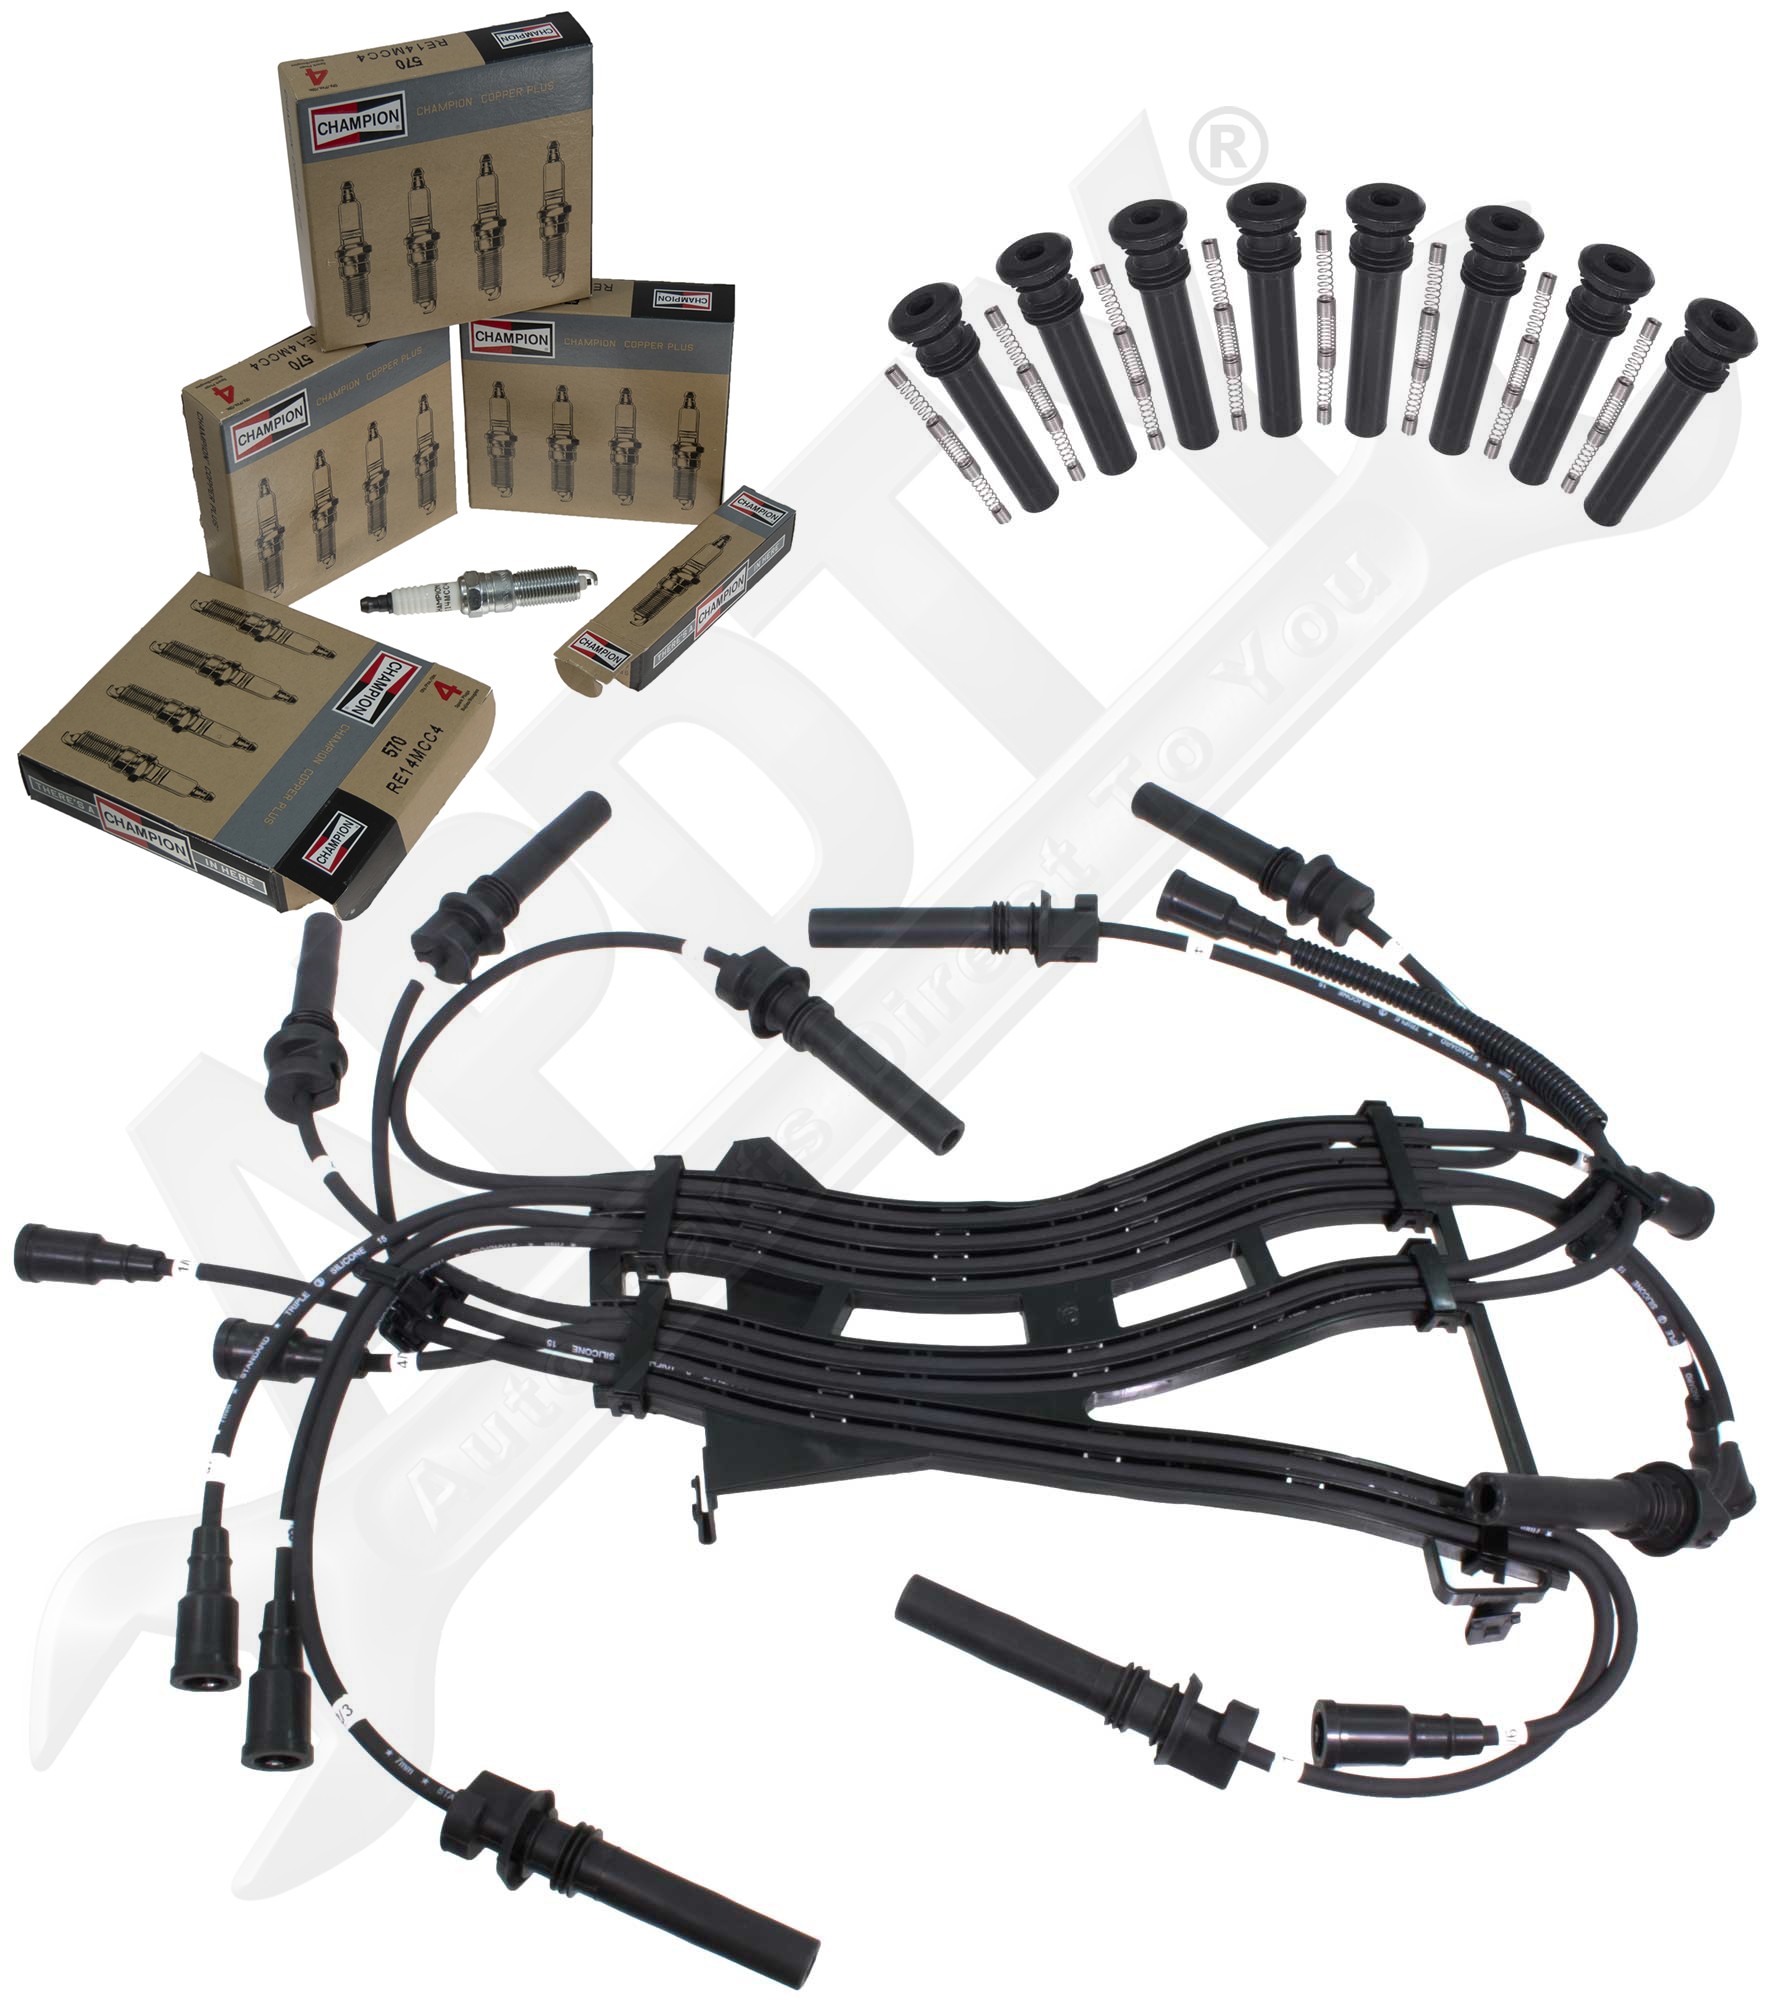 Dodge Ram Pickup 5 7l Hemi Tune Up Kit 16 Spark Plugs Ignition Wires Amp Cop Boots